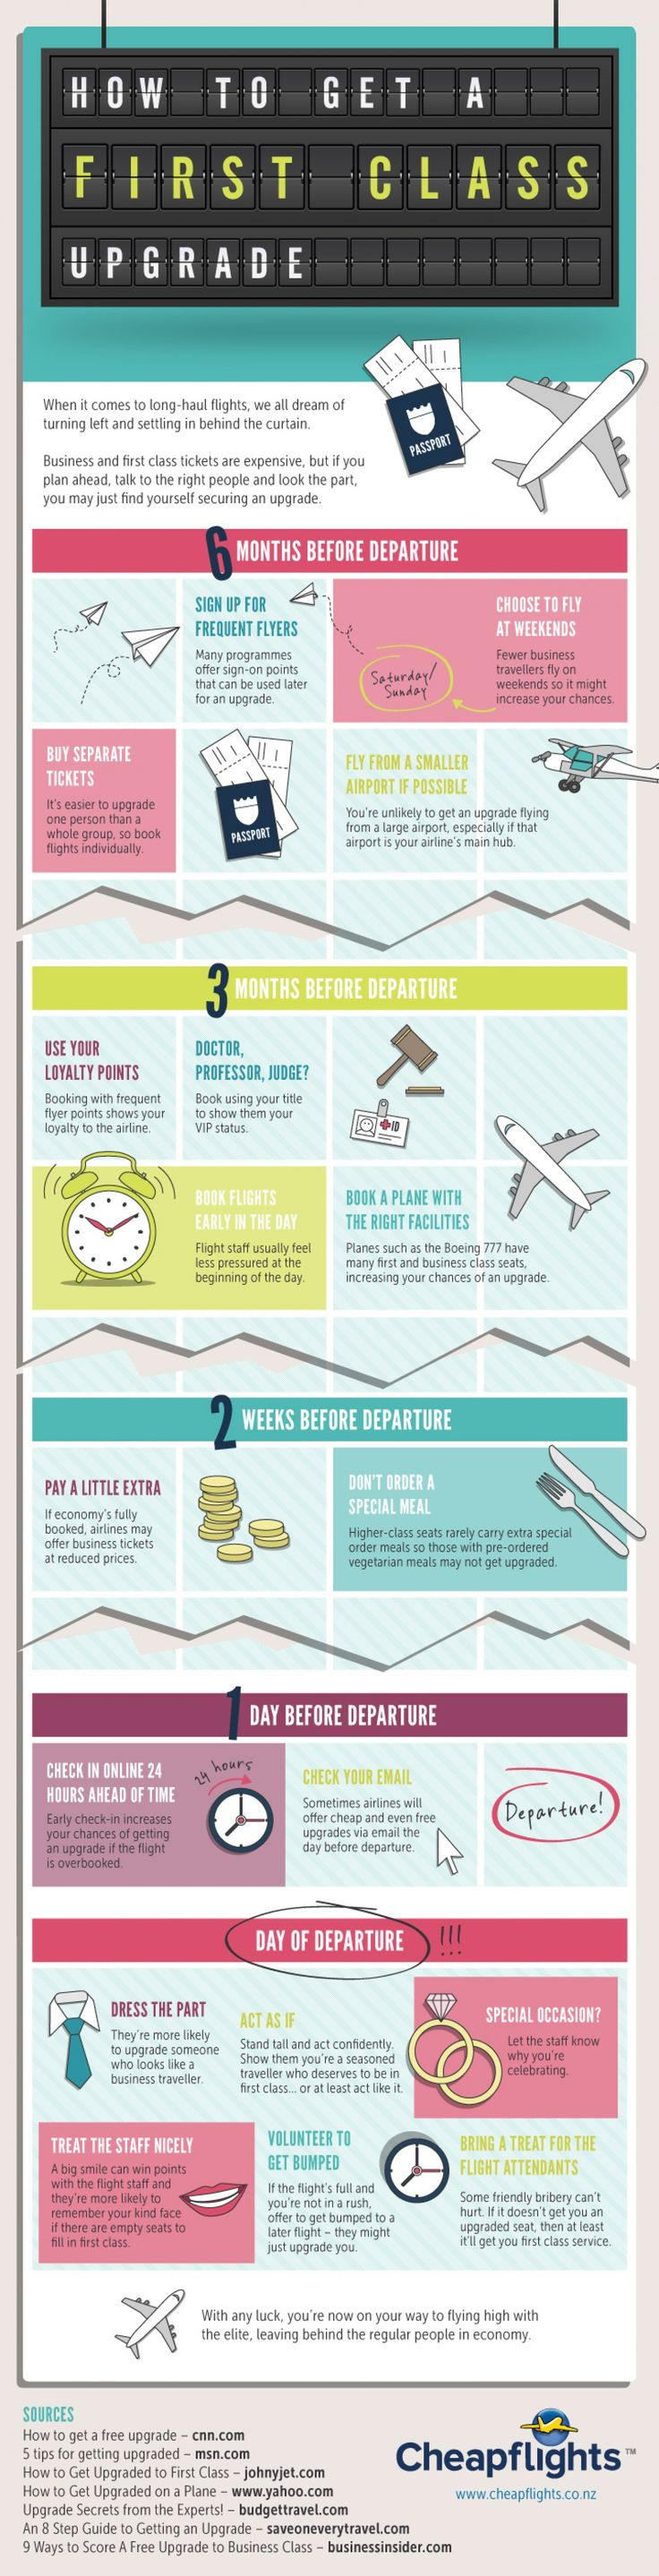 How To Get a First Class Upgrade Infographic